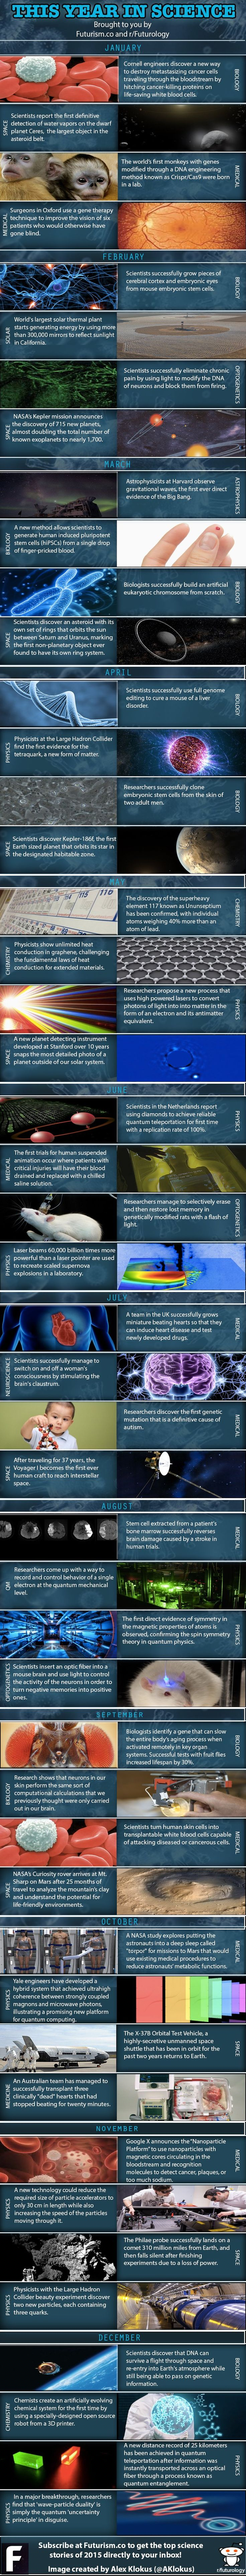 2014 Year In Science Infographic: The most important scientific discoveries of 2014